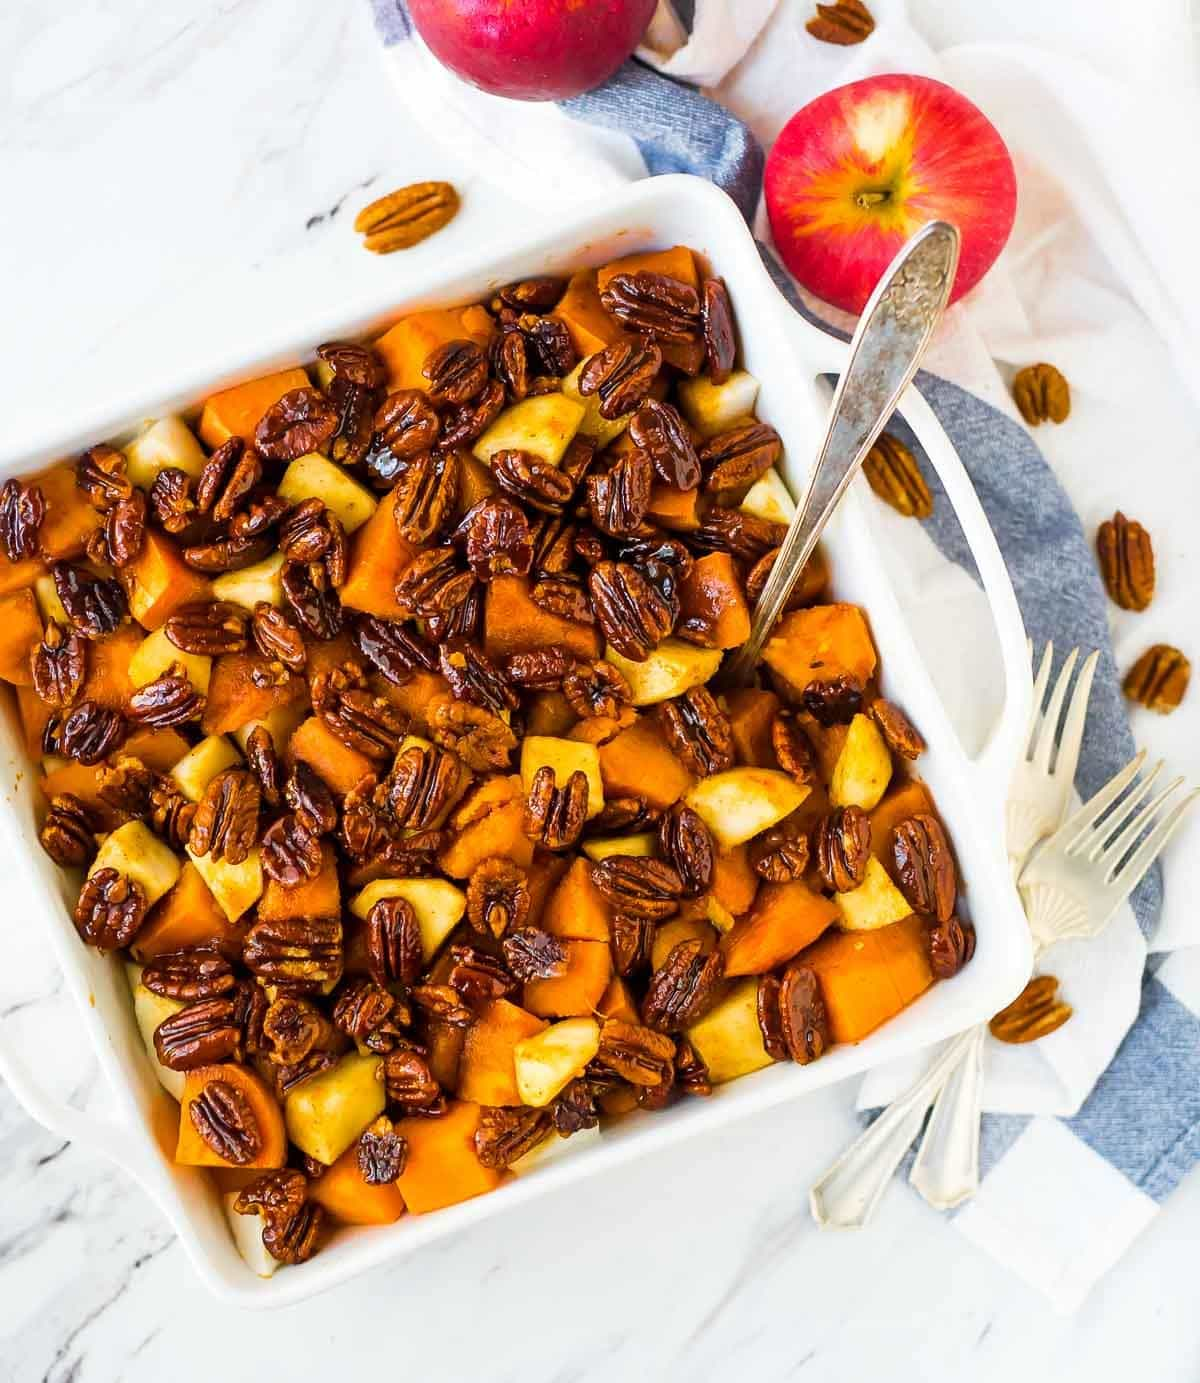 Glazed Sweet Potato Bake with Cinnamon Butter Pecans. The BEST sweet potatoes for Thanksgiving, Christmas, or anytime you need a great side dish recipe. Recipe at wellplated.com | @wellplated